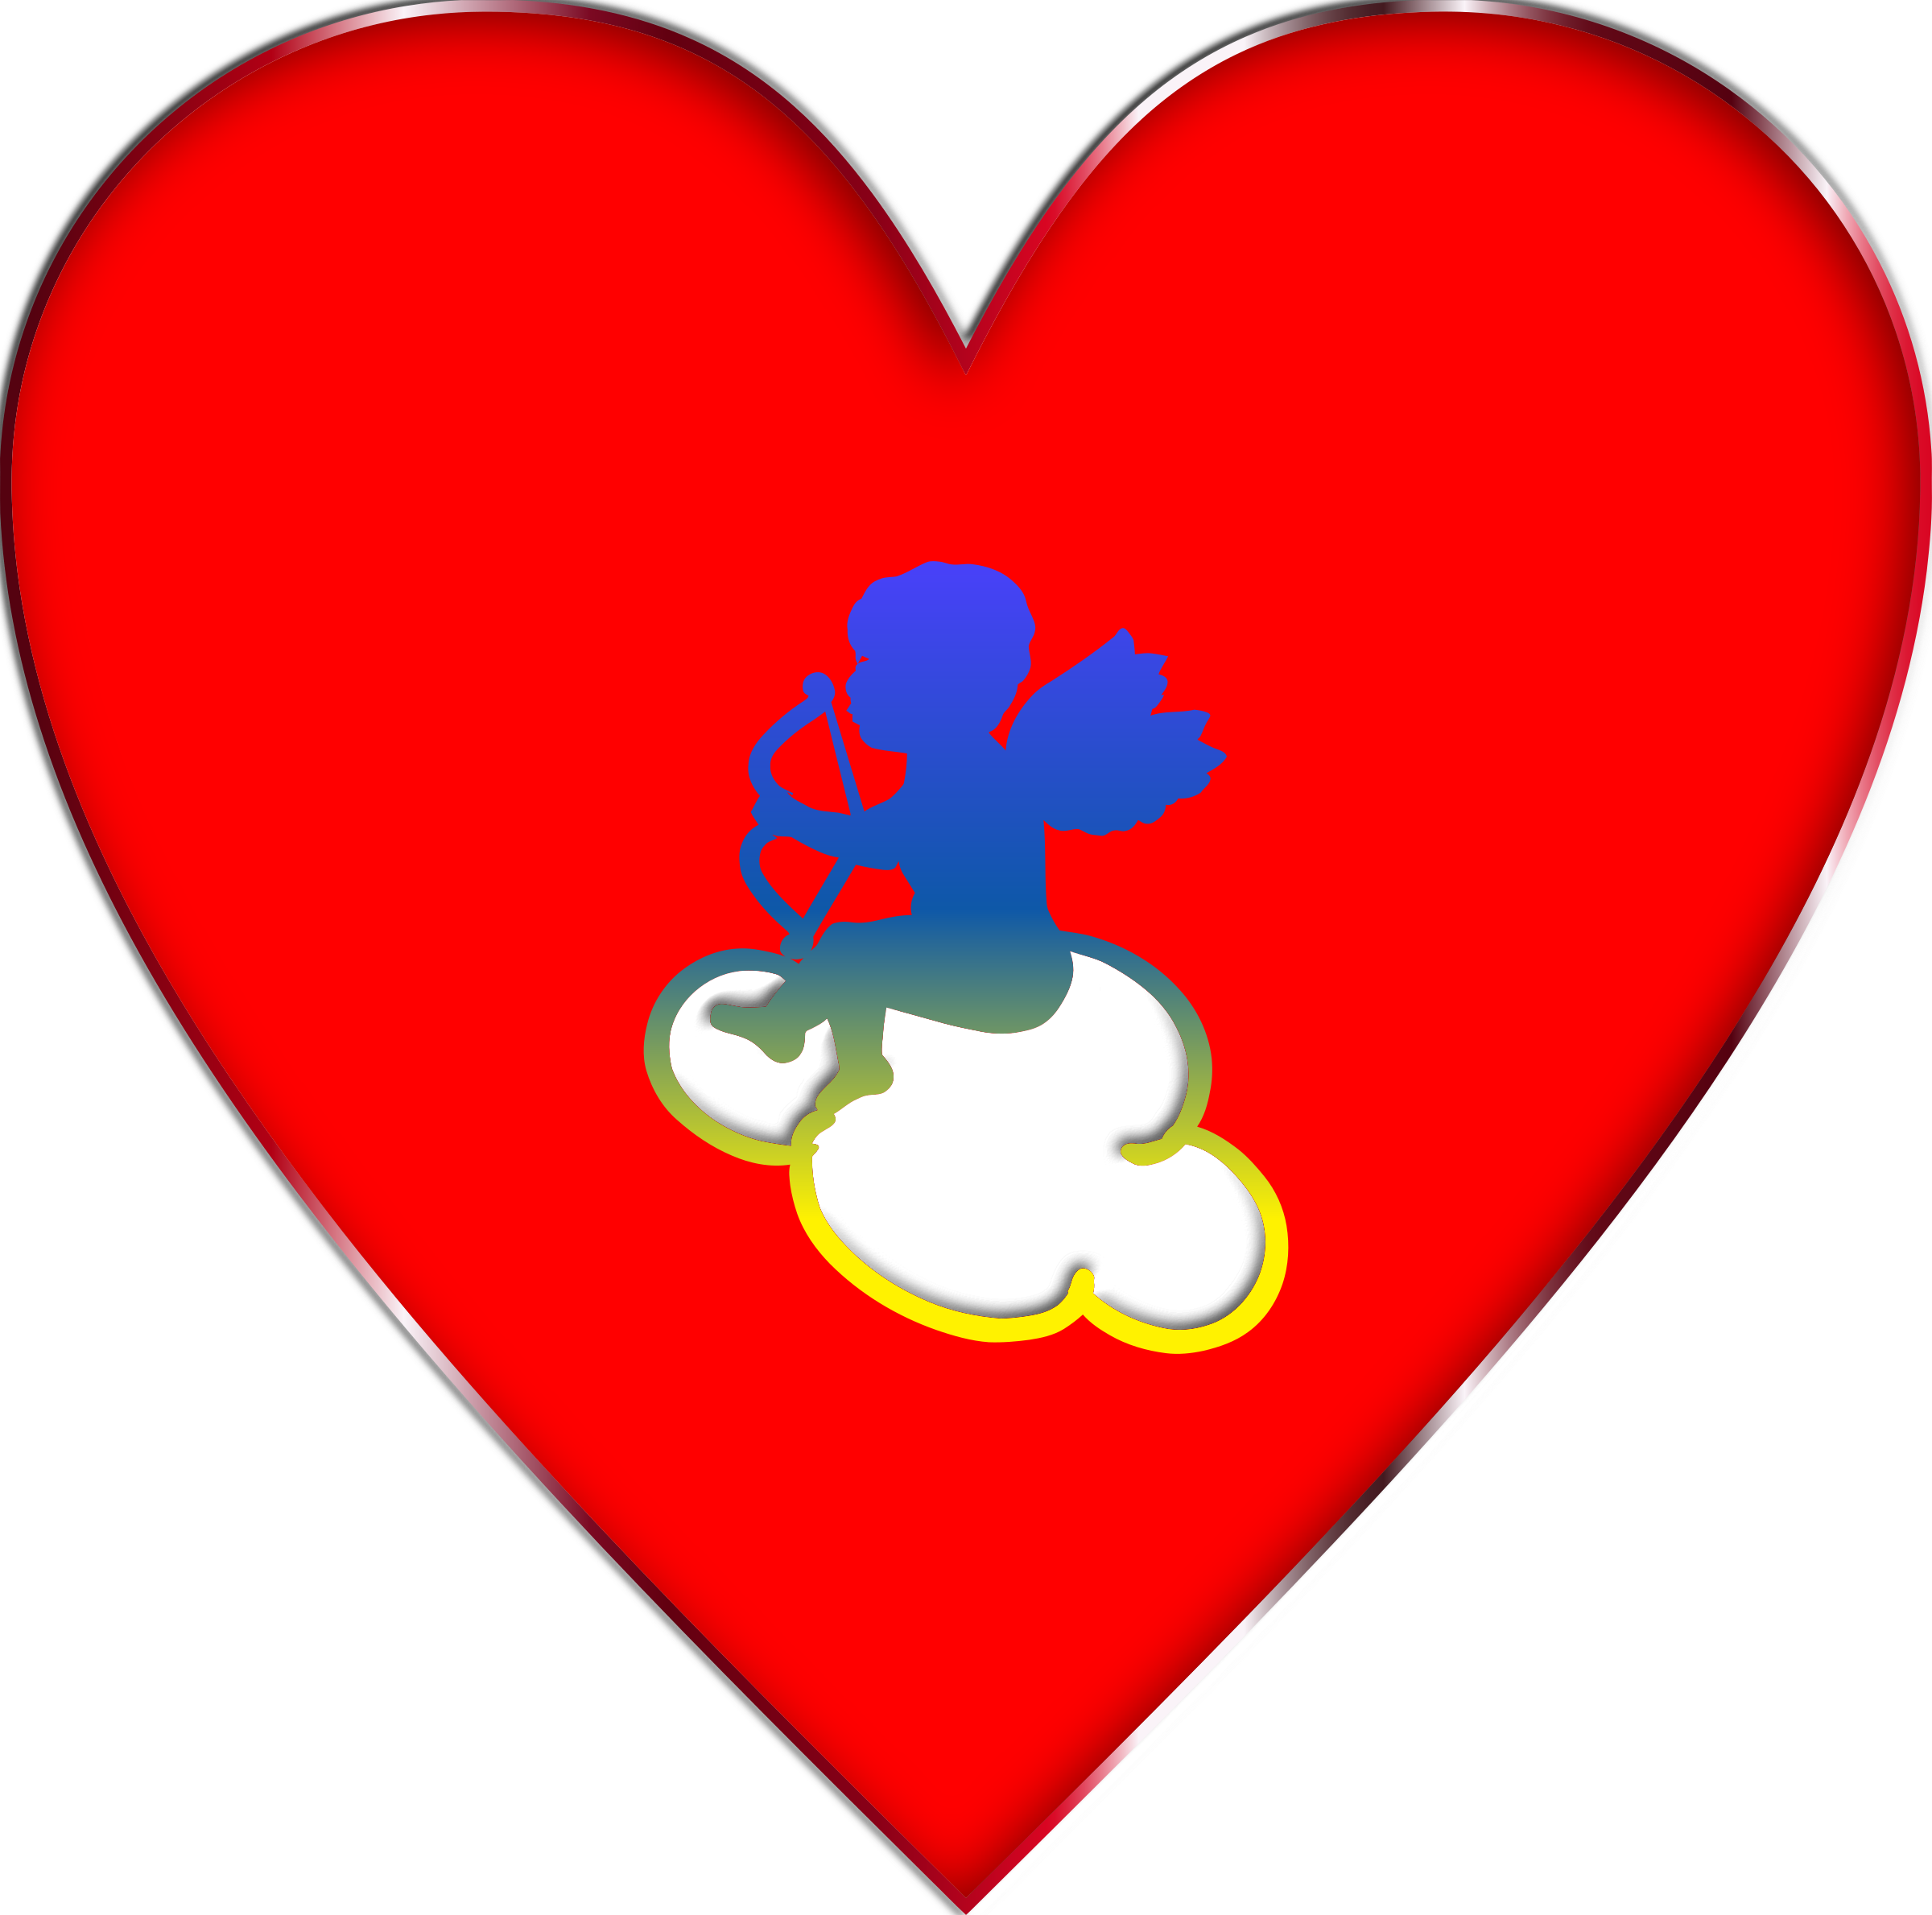 Heart cloud clipart jpg library stock Clipart - Cupid Heart Cloud Enhanced jpg library stock